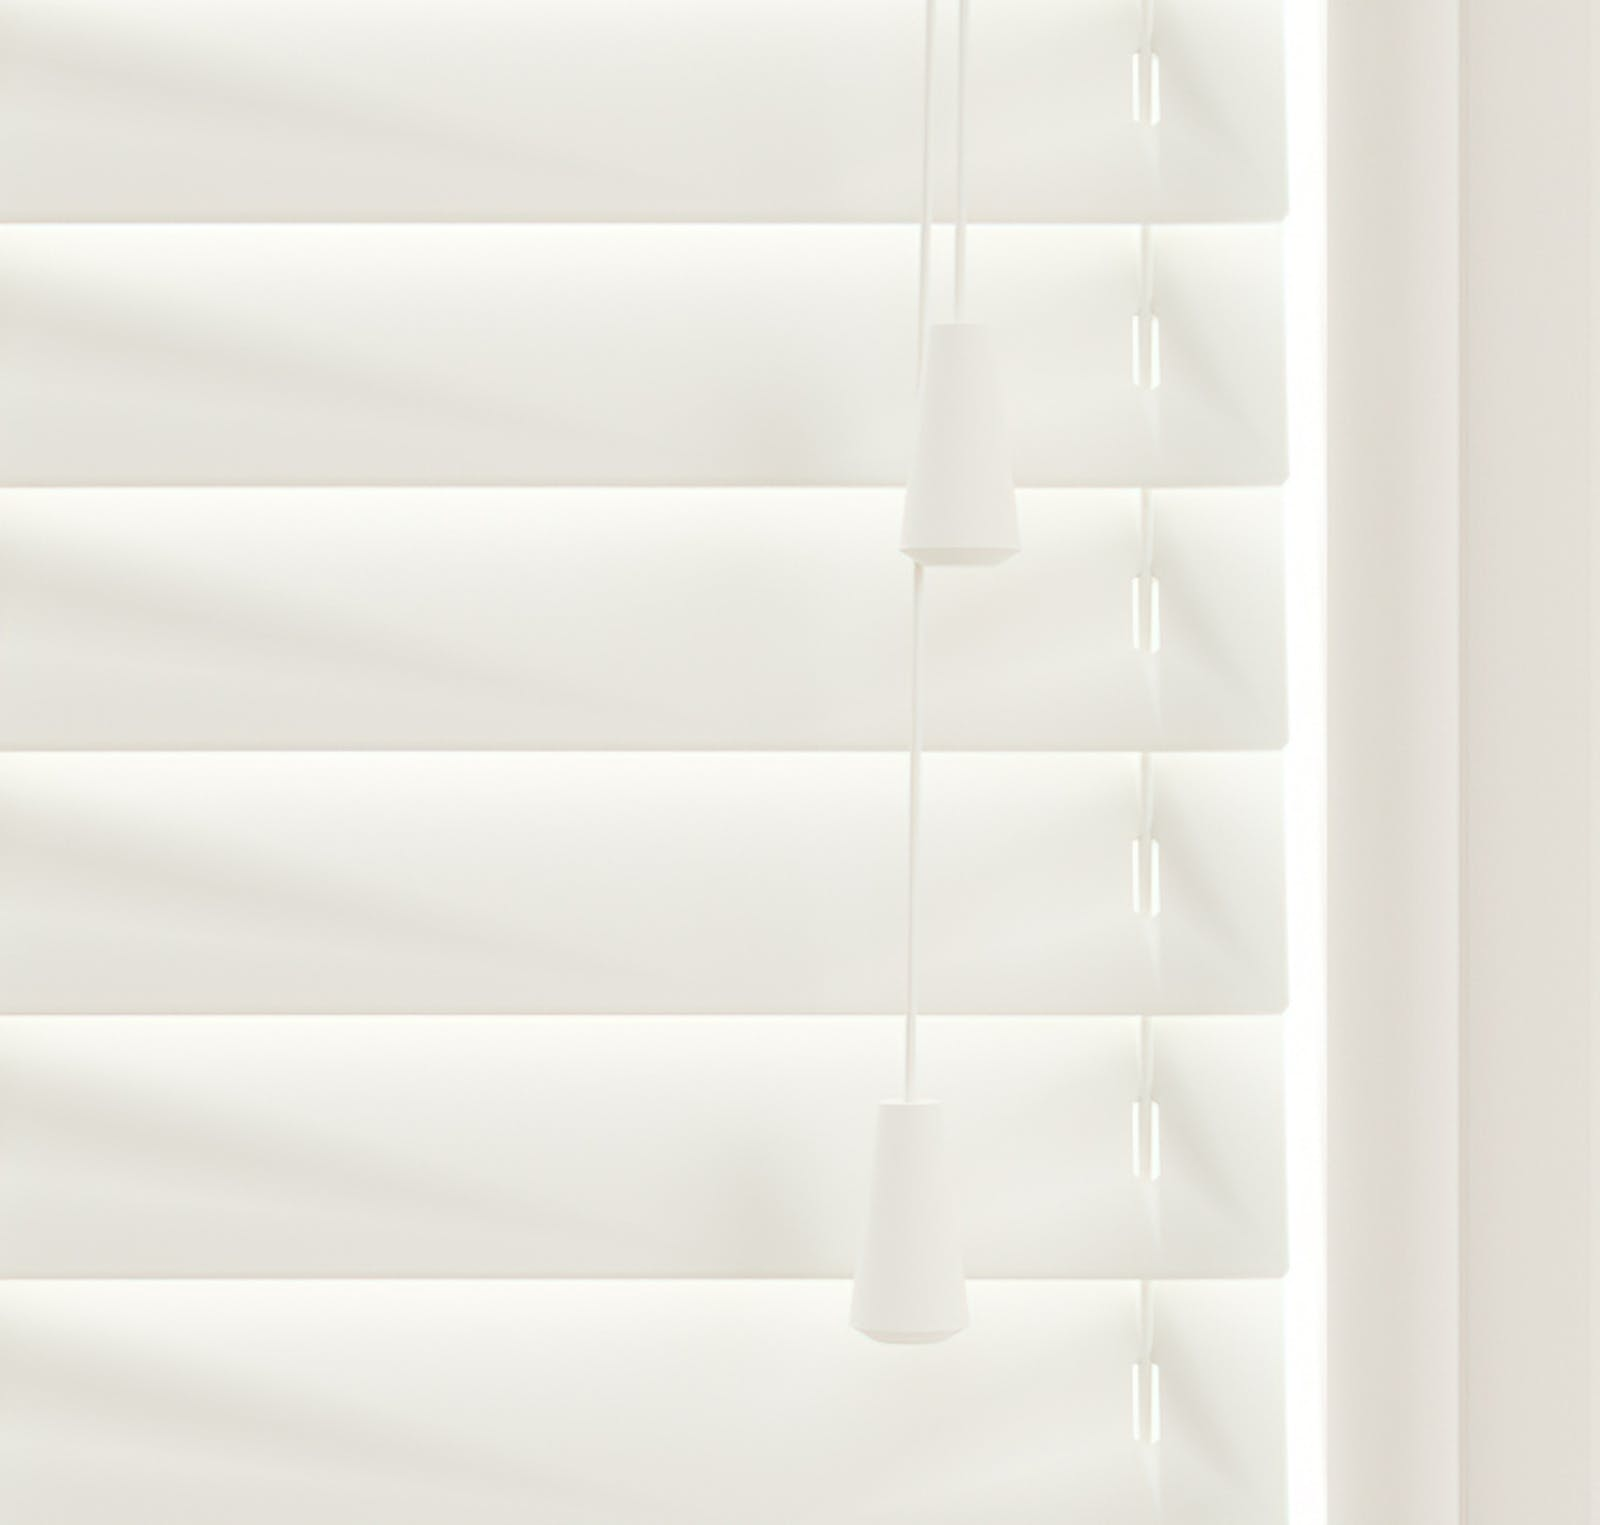 Close up view of Lick White 01 Venetian blinds